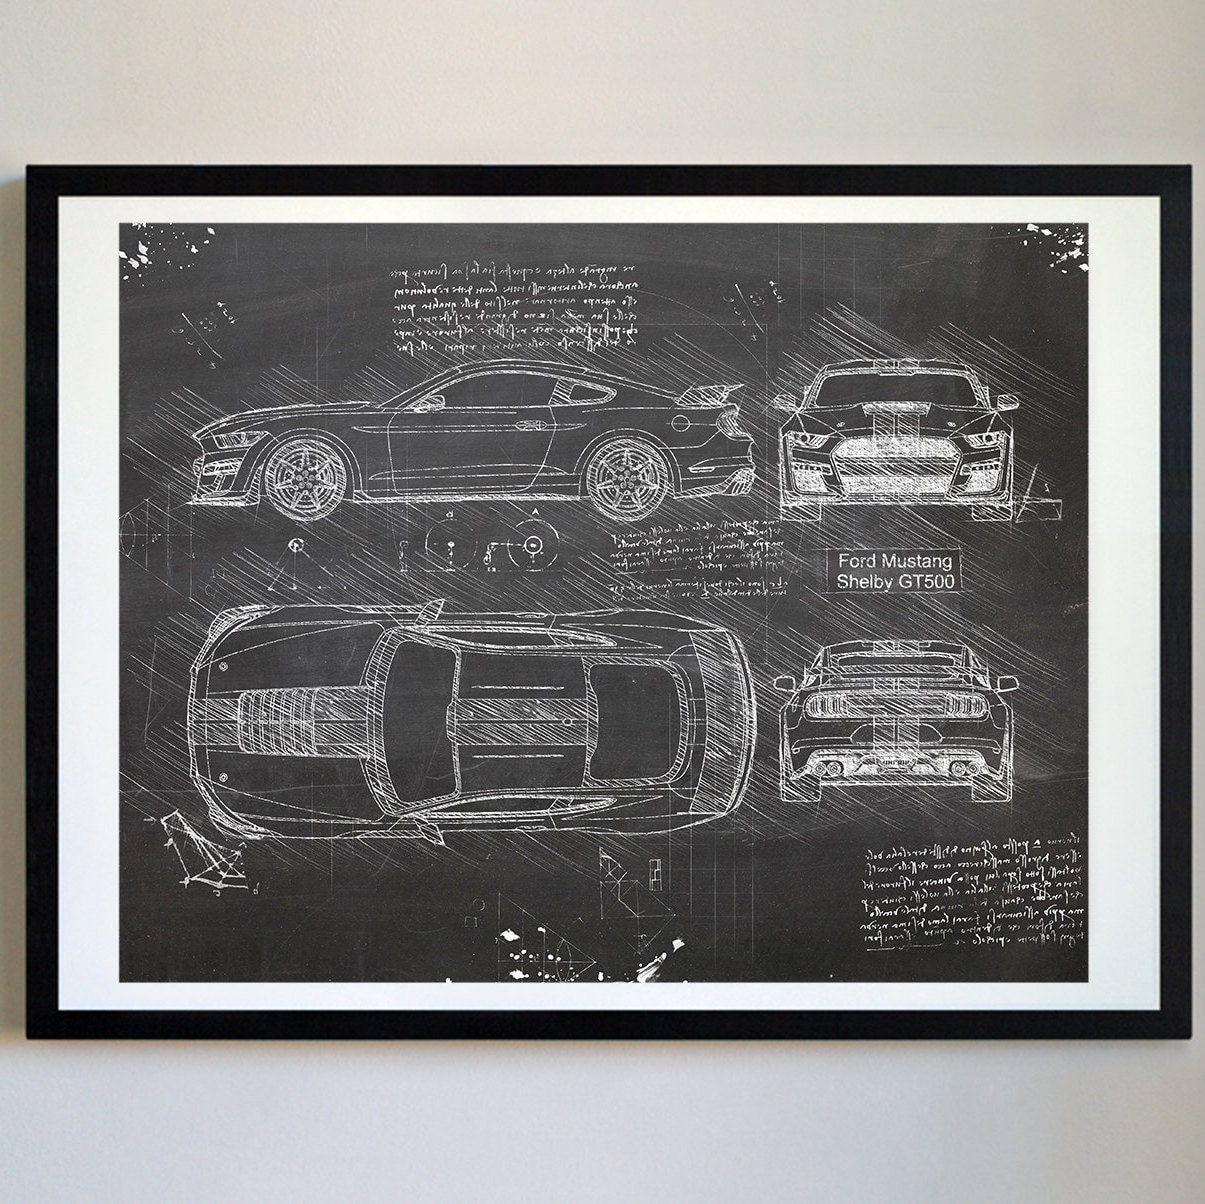 Ford Mustang Shelby GT500 (2019) da Vinci Sketch Art Print, Patent Prints  Posters, Mustang Decor, Art, Car Art, Cars (#717)